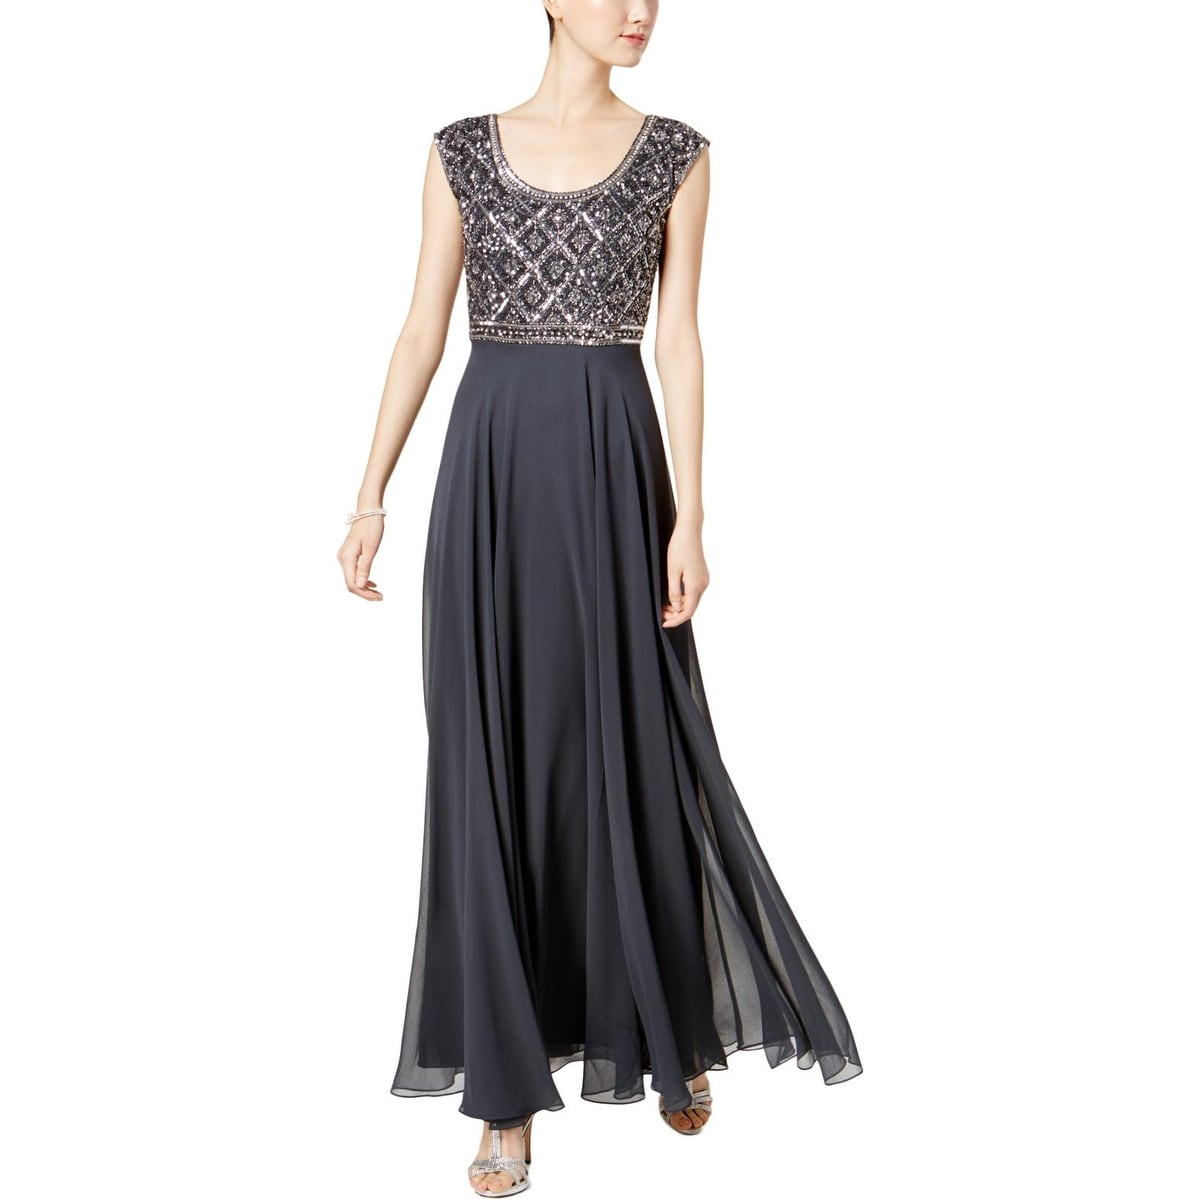 J Kara Dresses | Find Great Women's Clothing